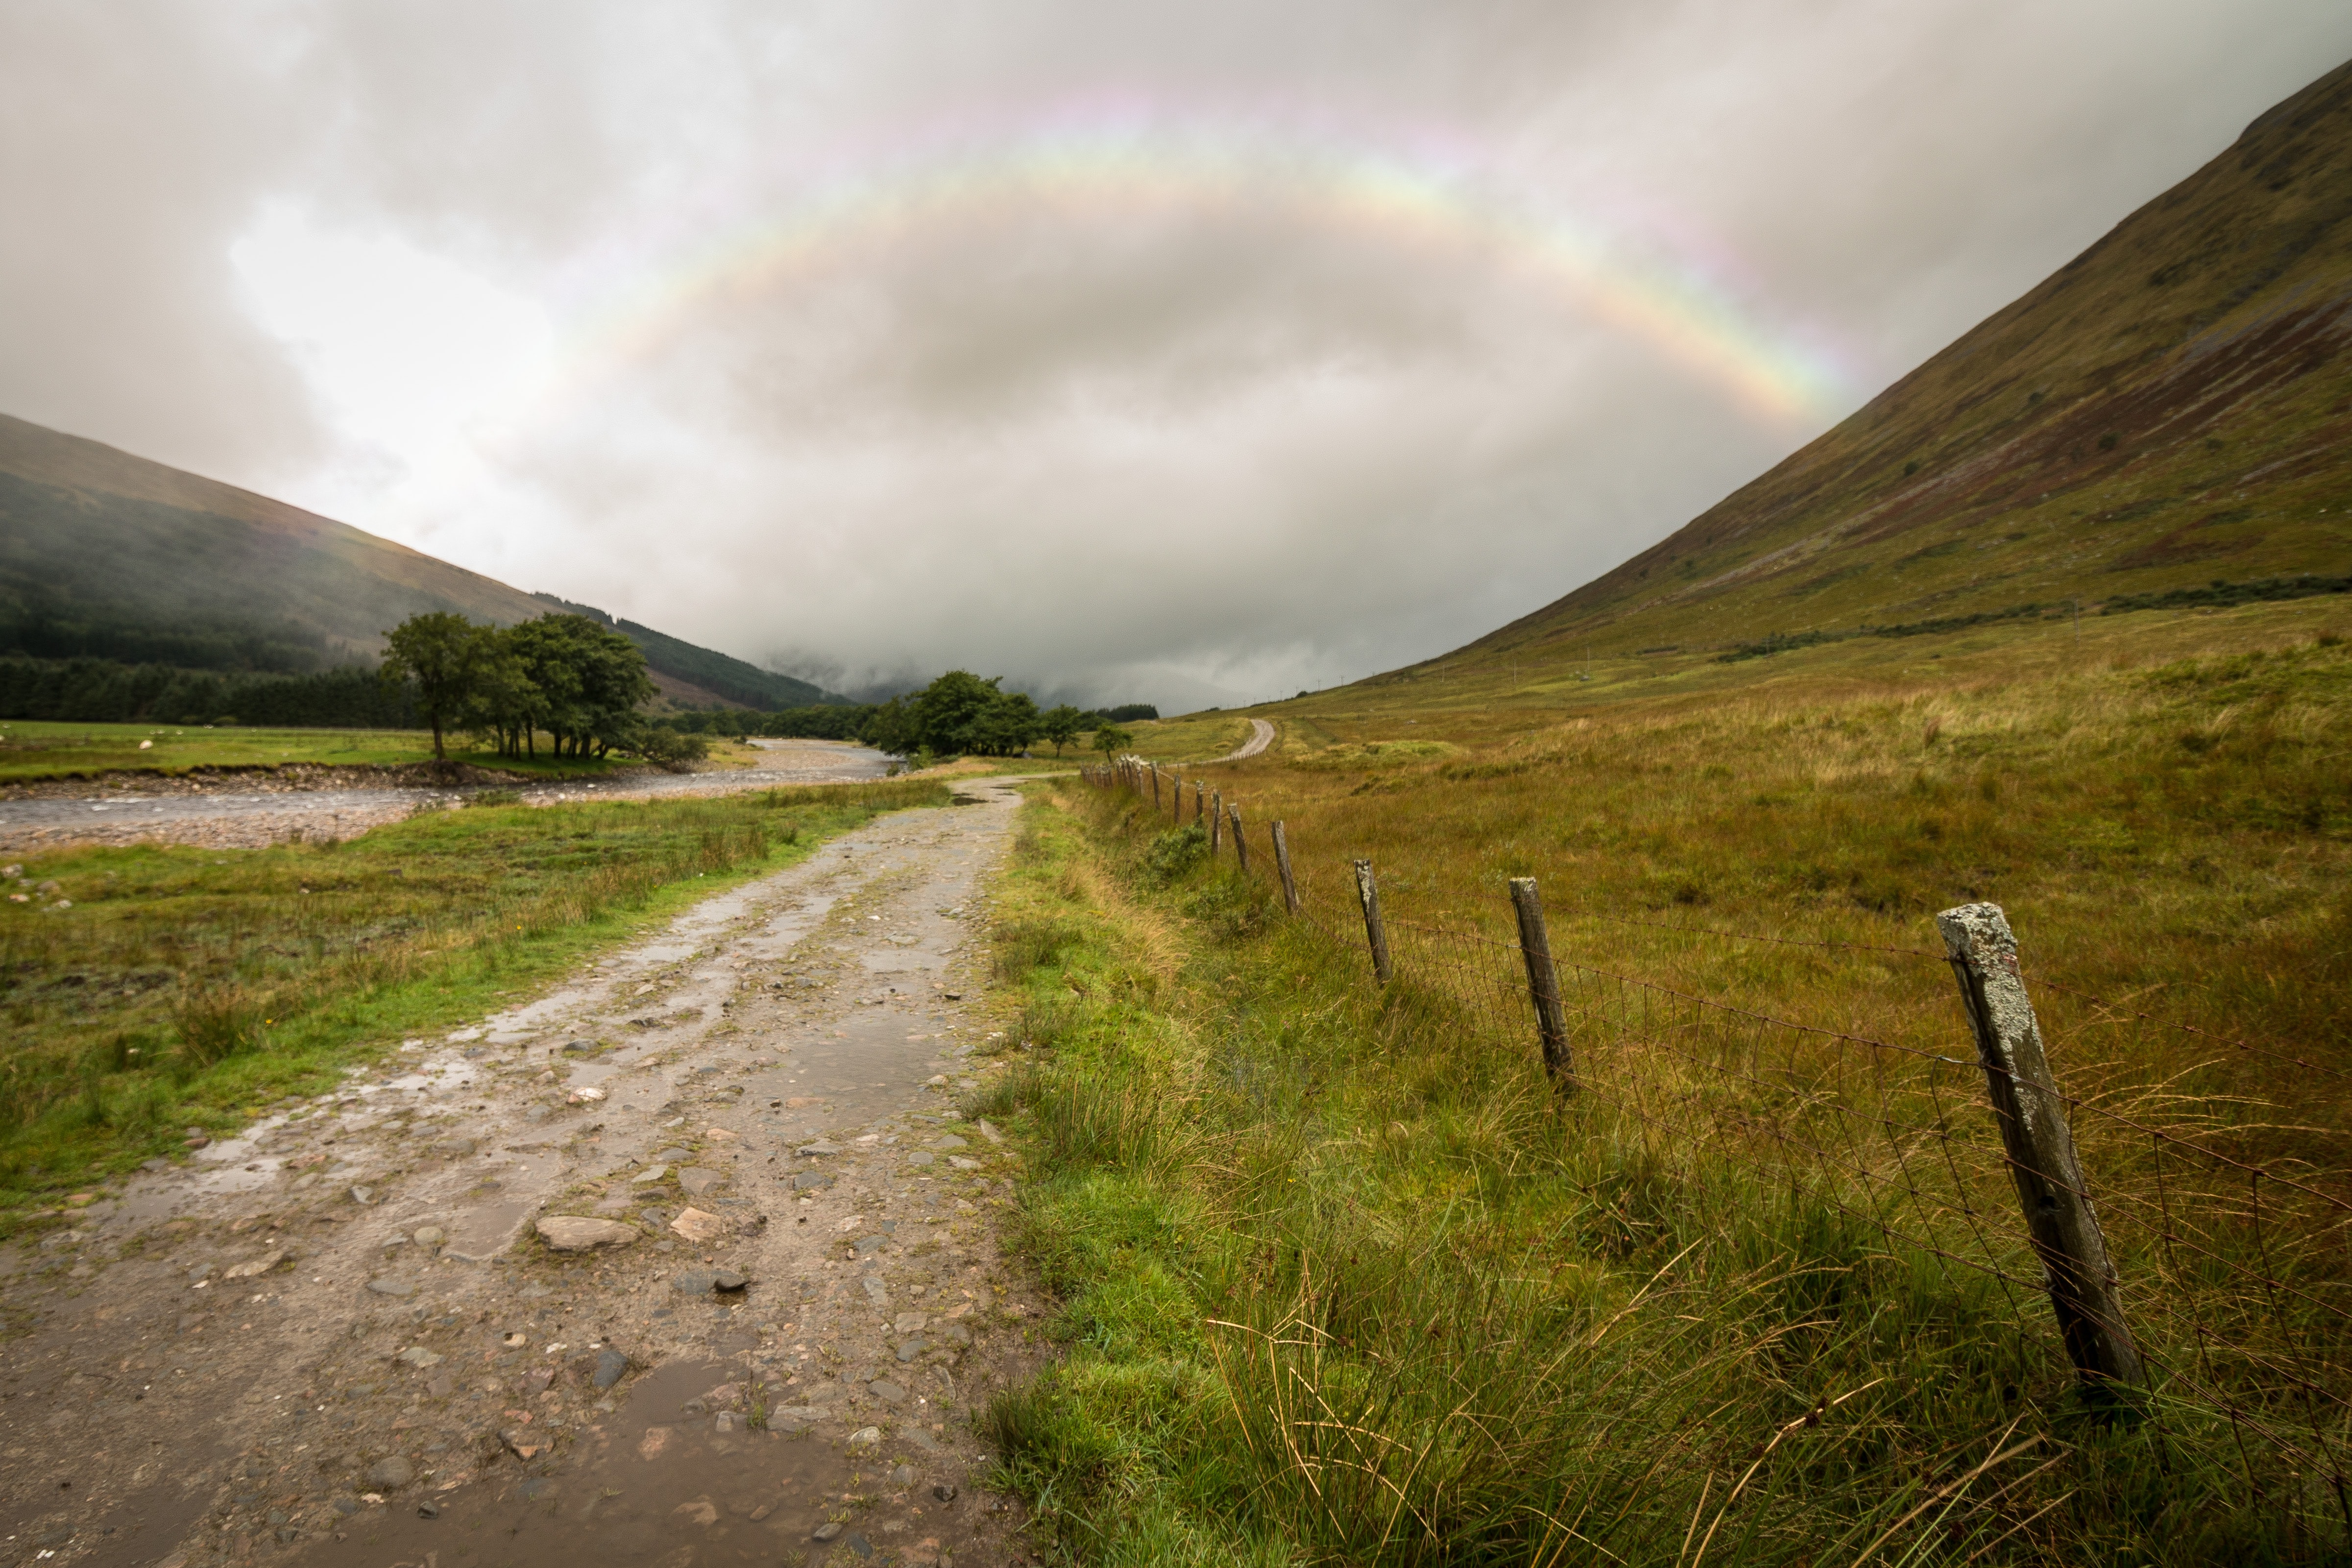 dirt road beside fence on mountainside below rainbow during daytime